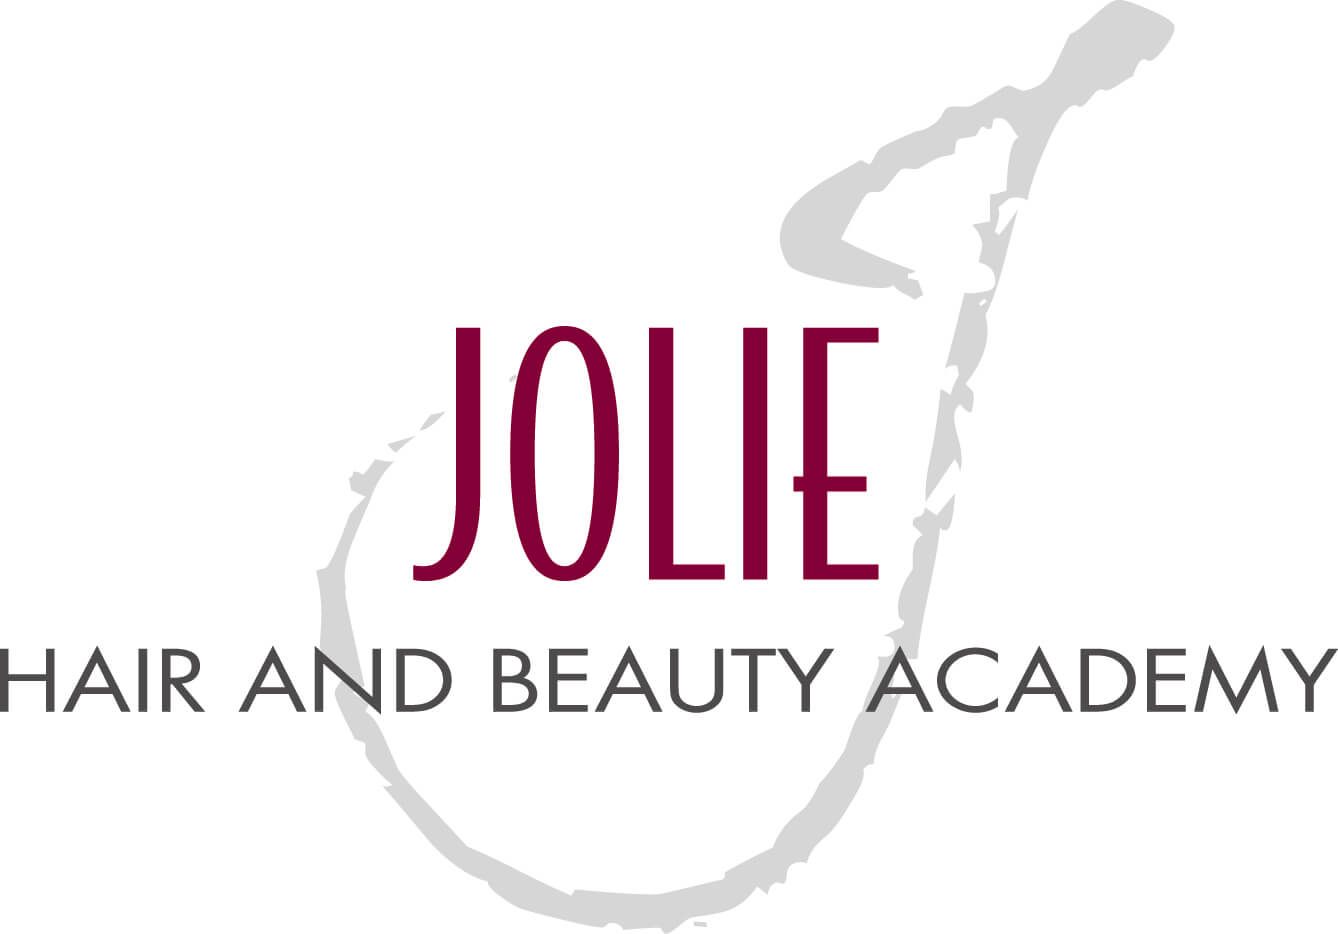 Jolie Hair and Beauty Academy logo